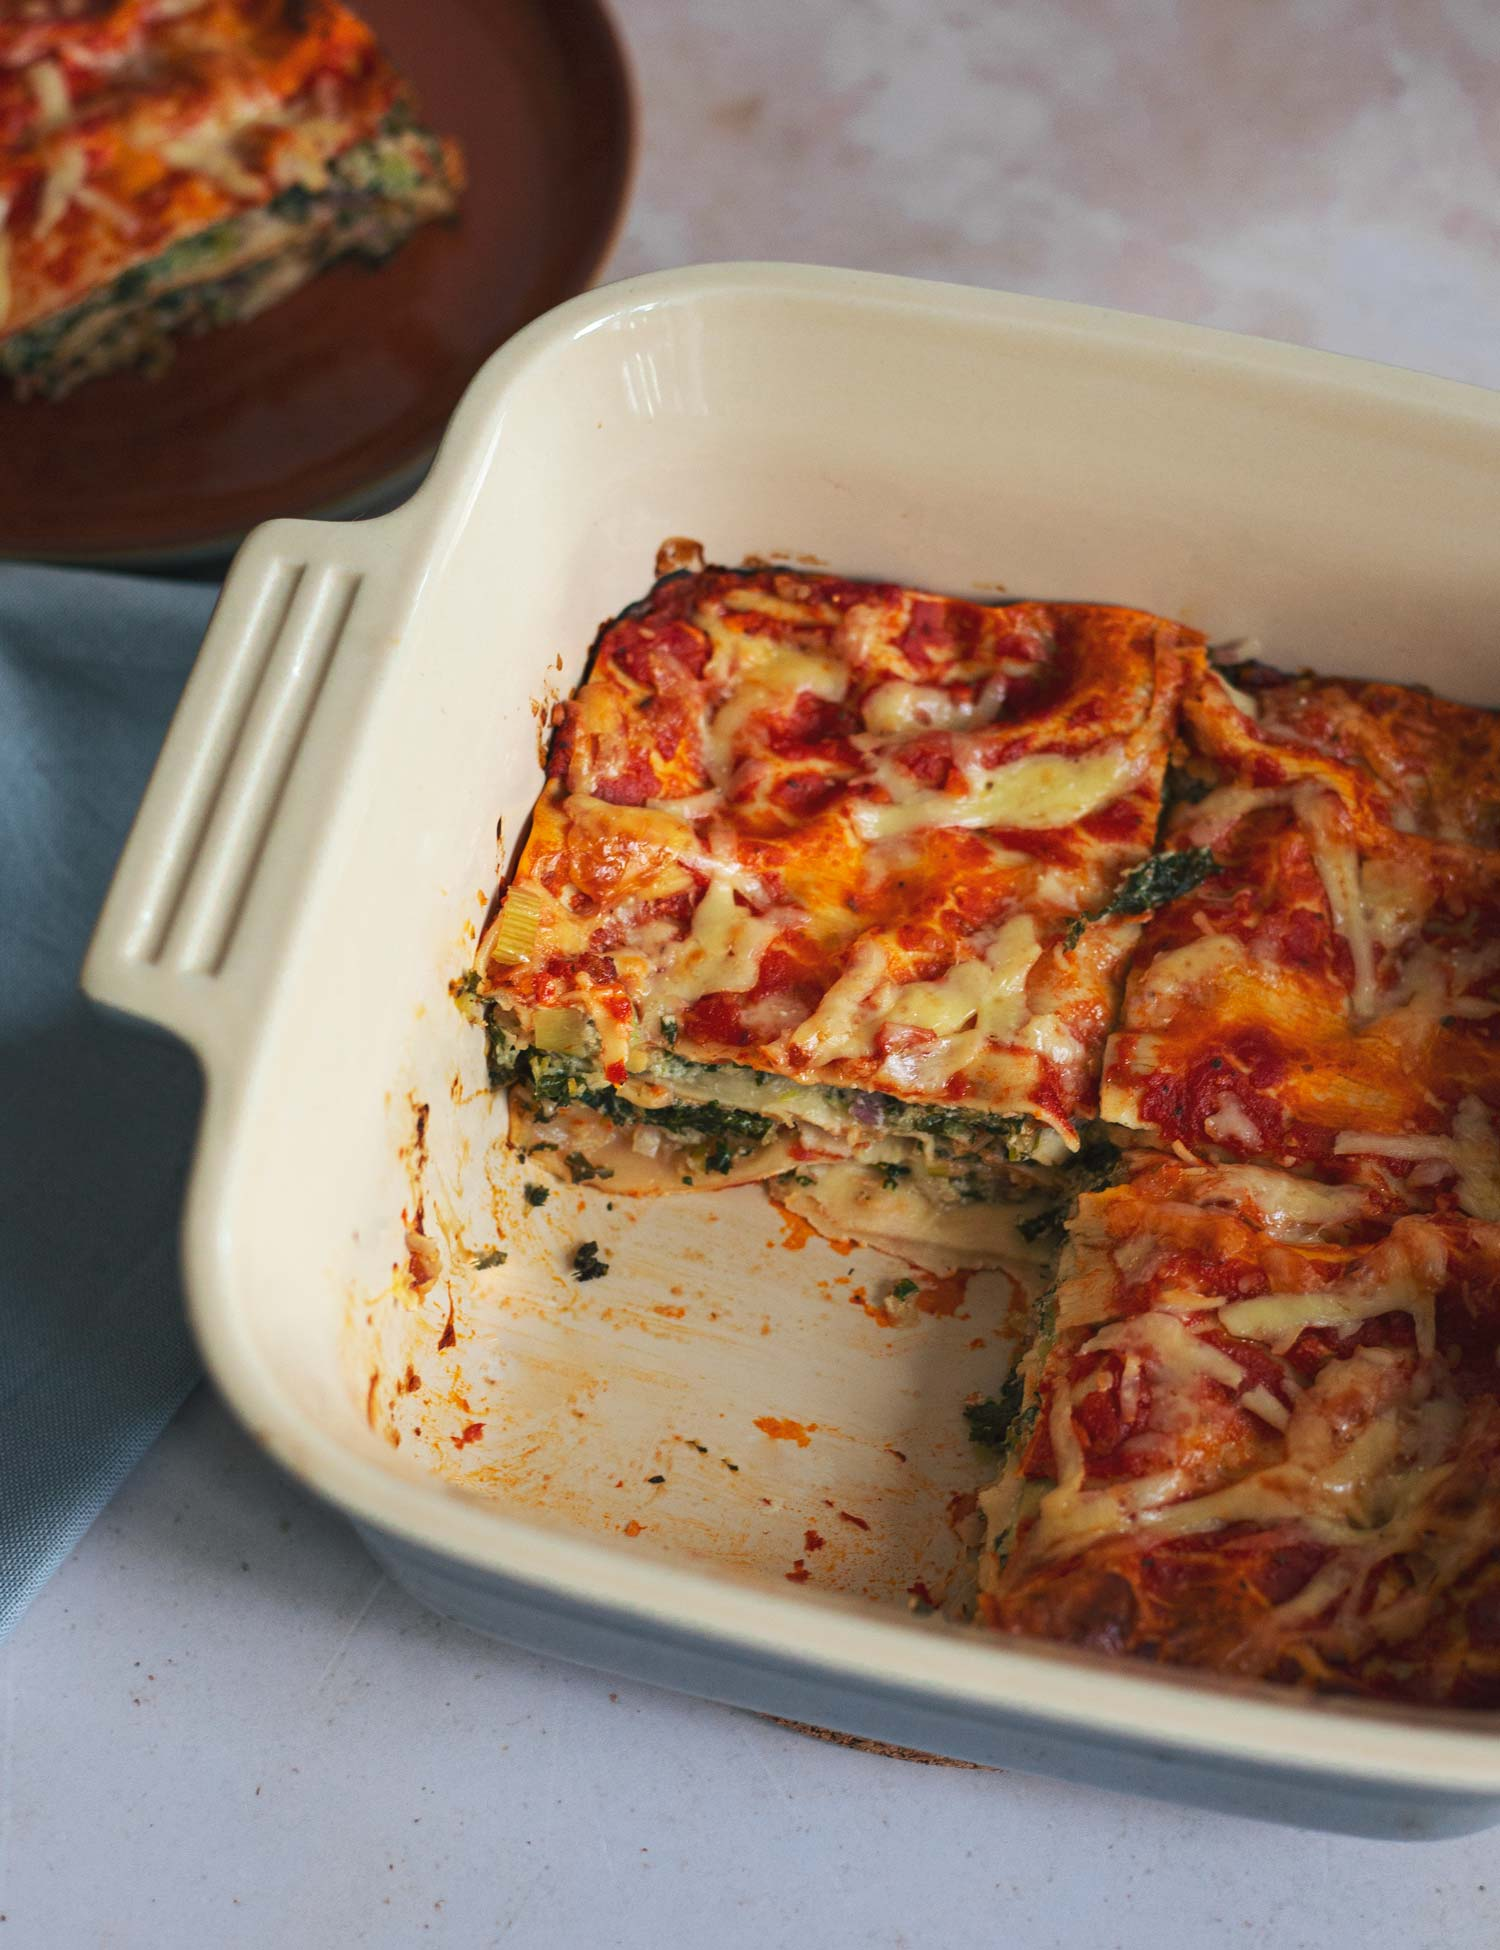 An oven dish with three slices of vegetable lasagne in it